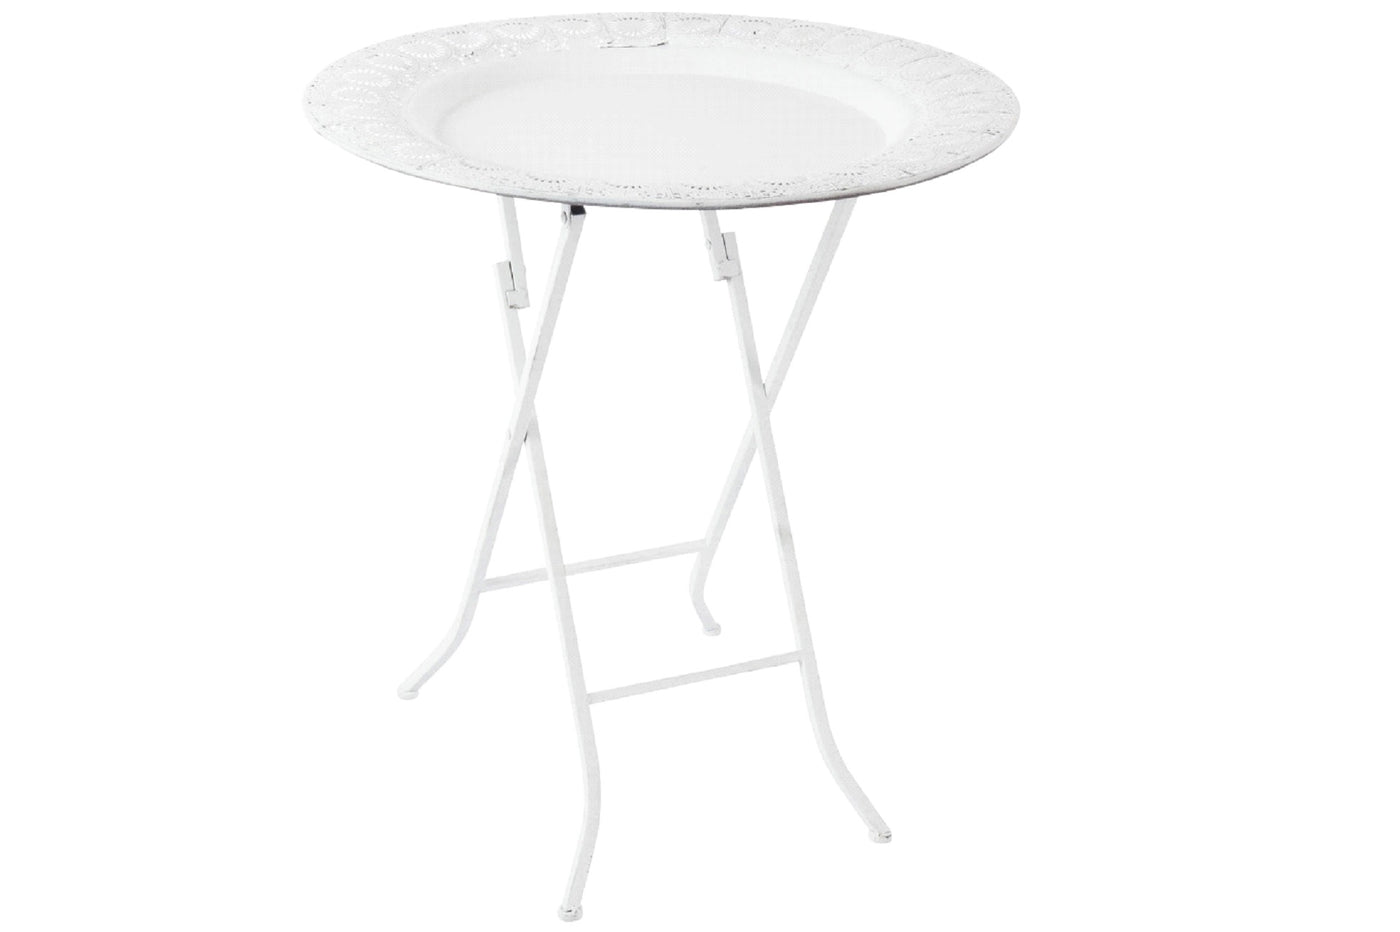 Round White Metal Folding Table